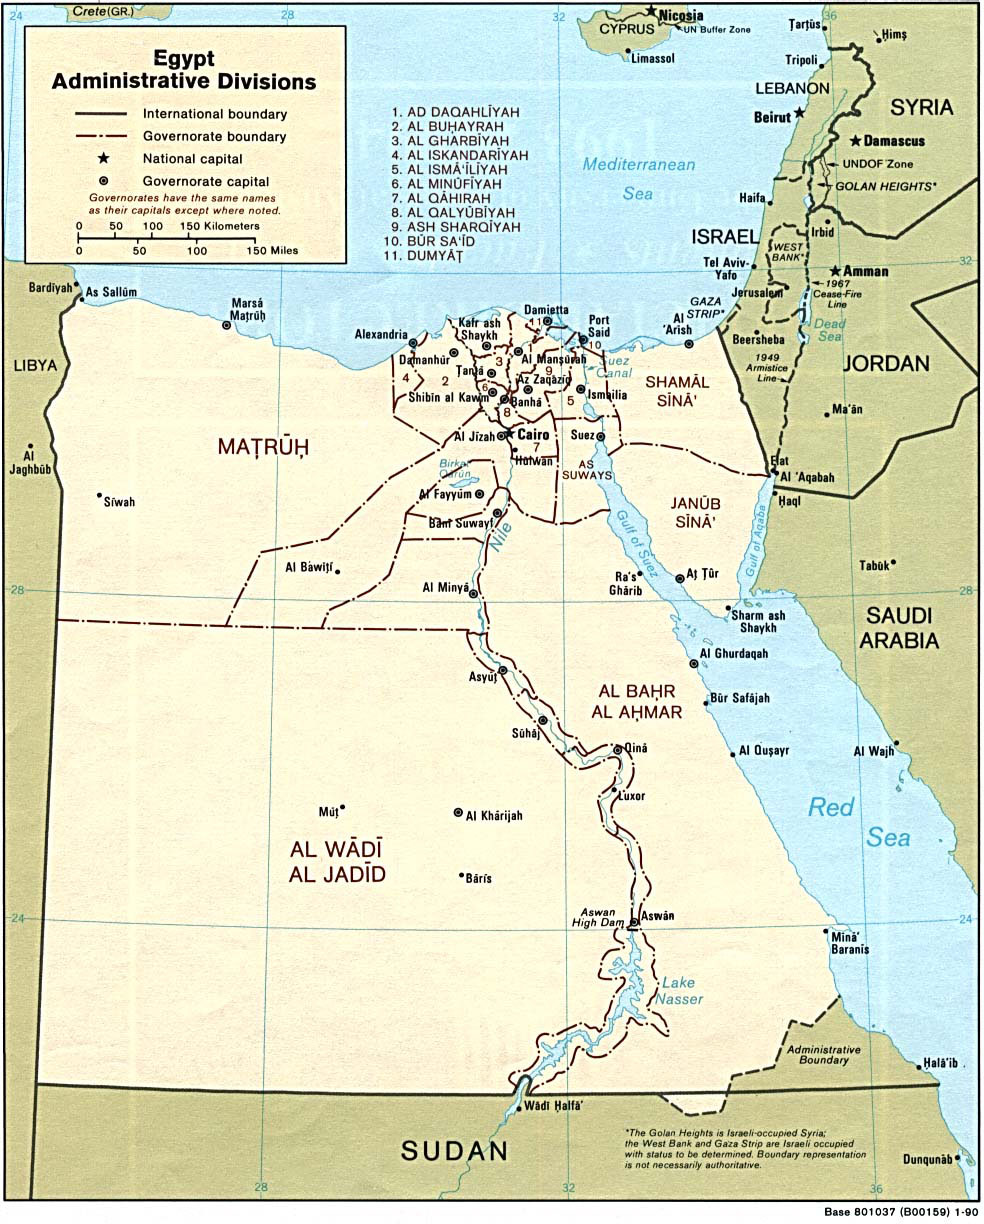 Detailed Administrative Divisions Map Of Egypt Egypt Detailed Administrative Divisions Map